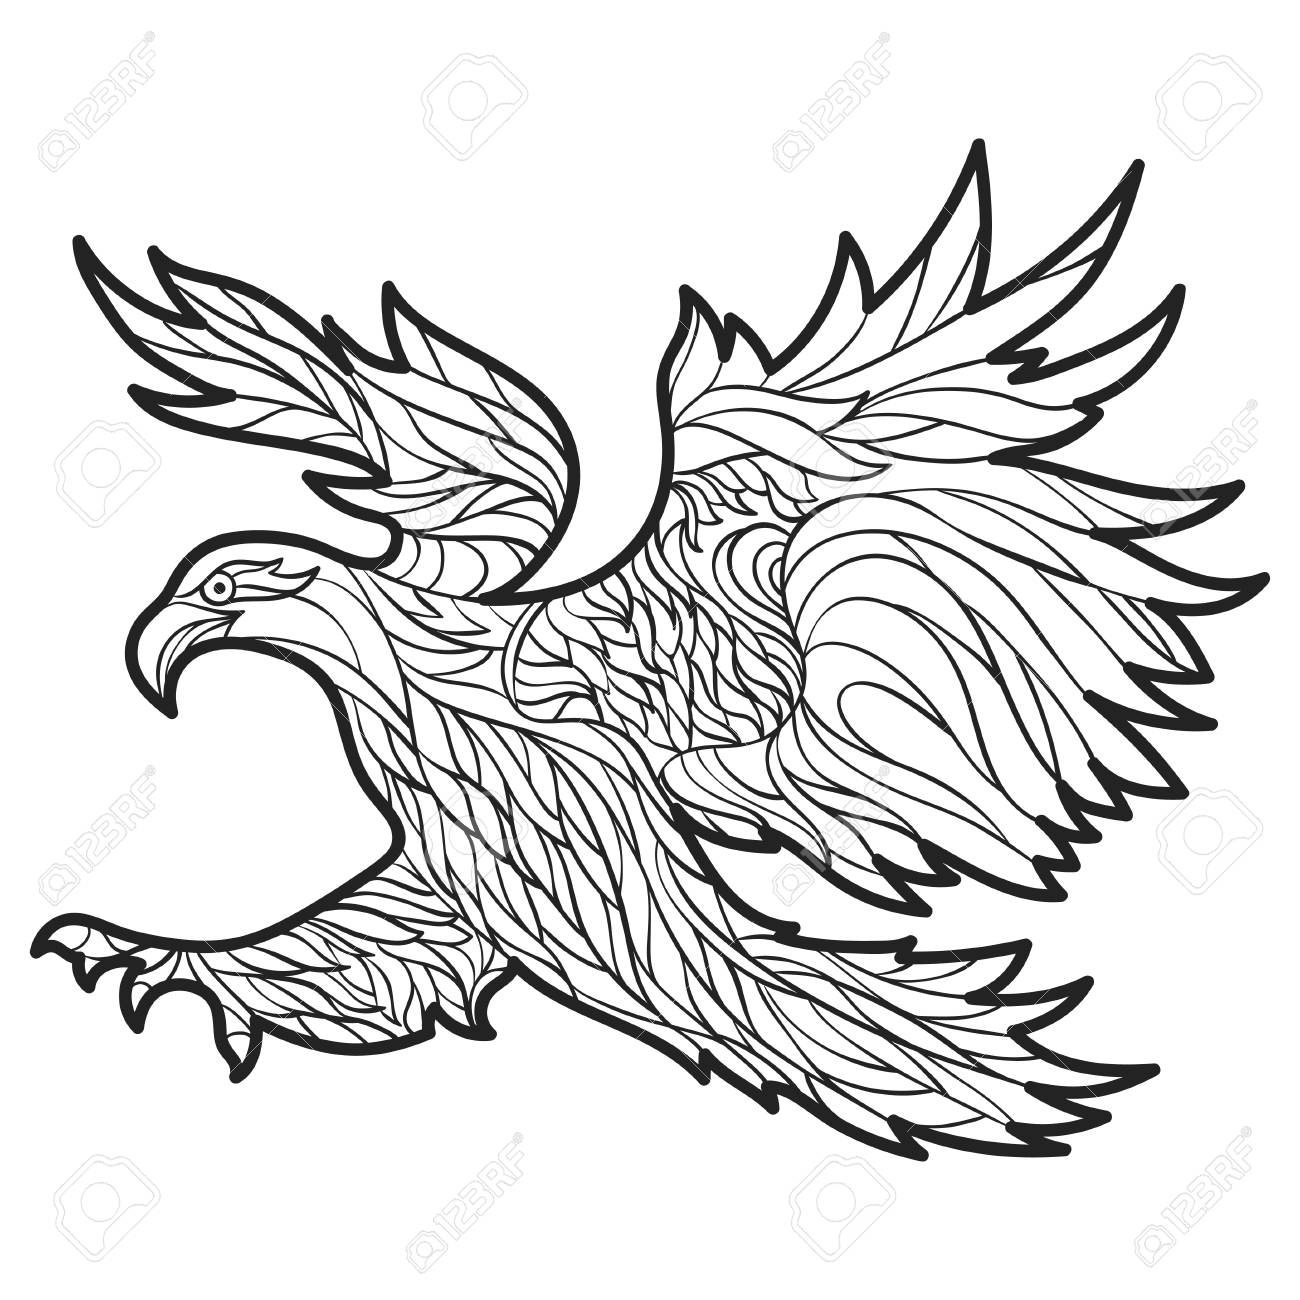 Vector Monochrome Hand Drawn Illustration Of Eagle. Coloring ...